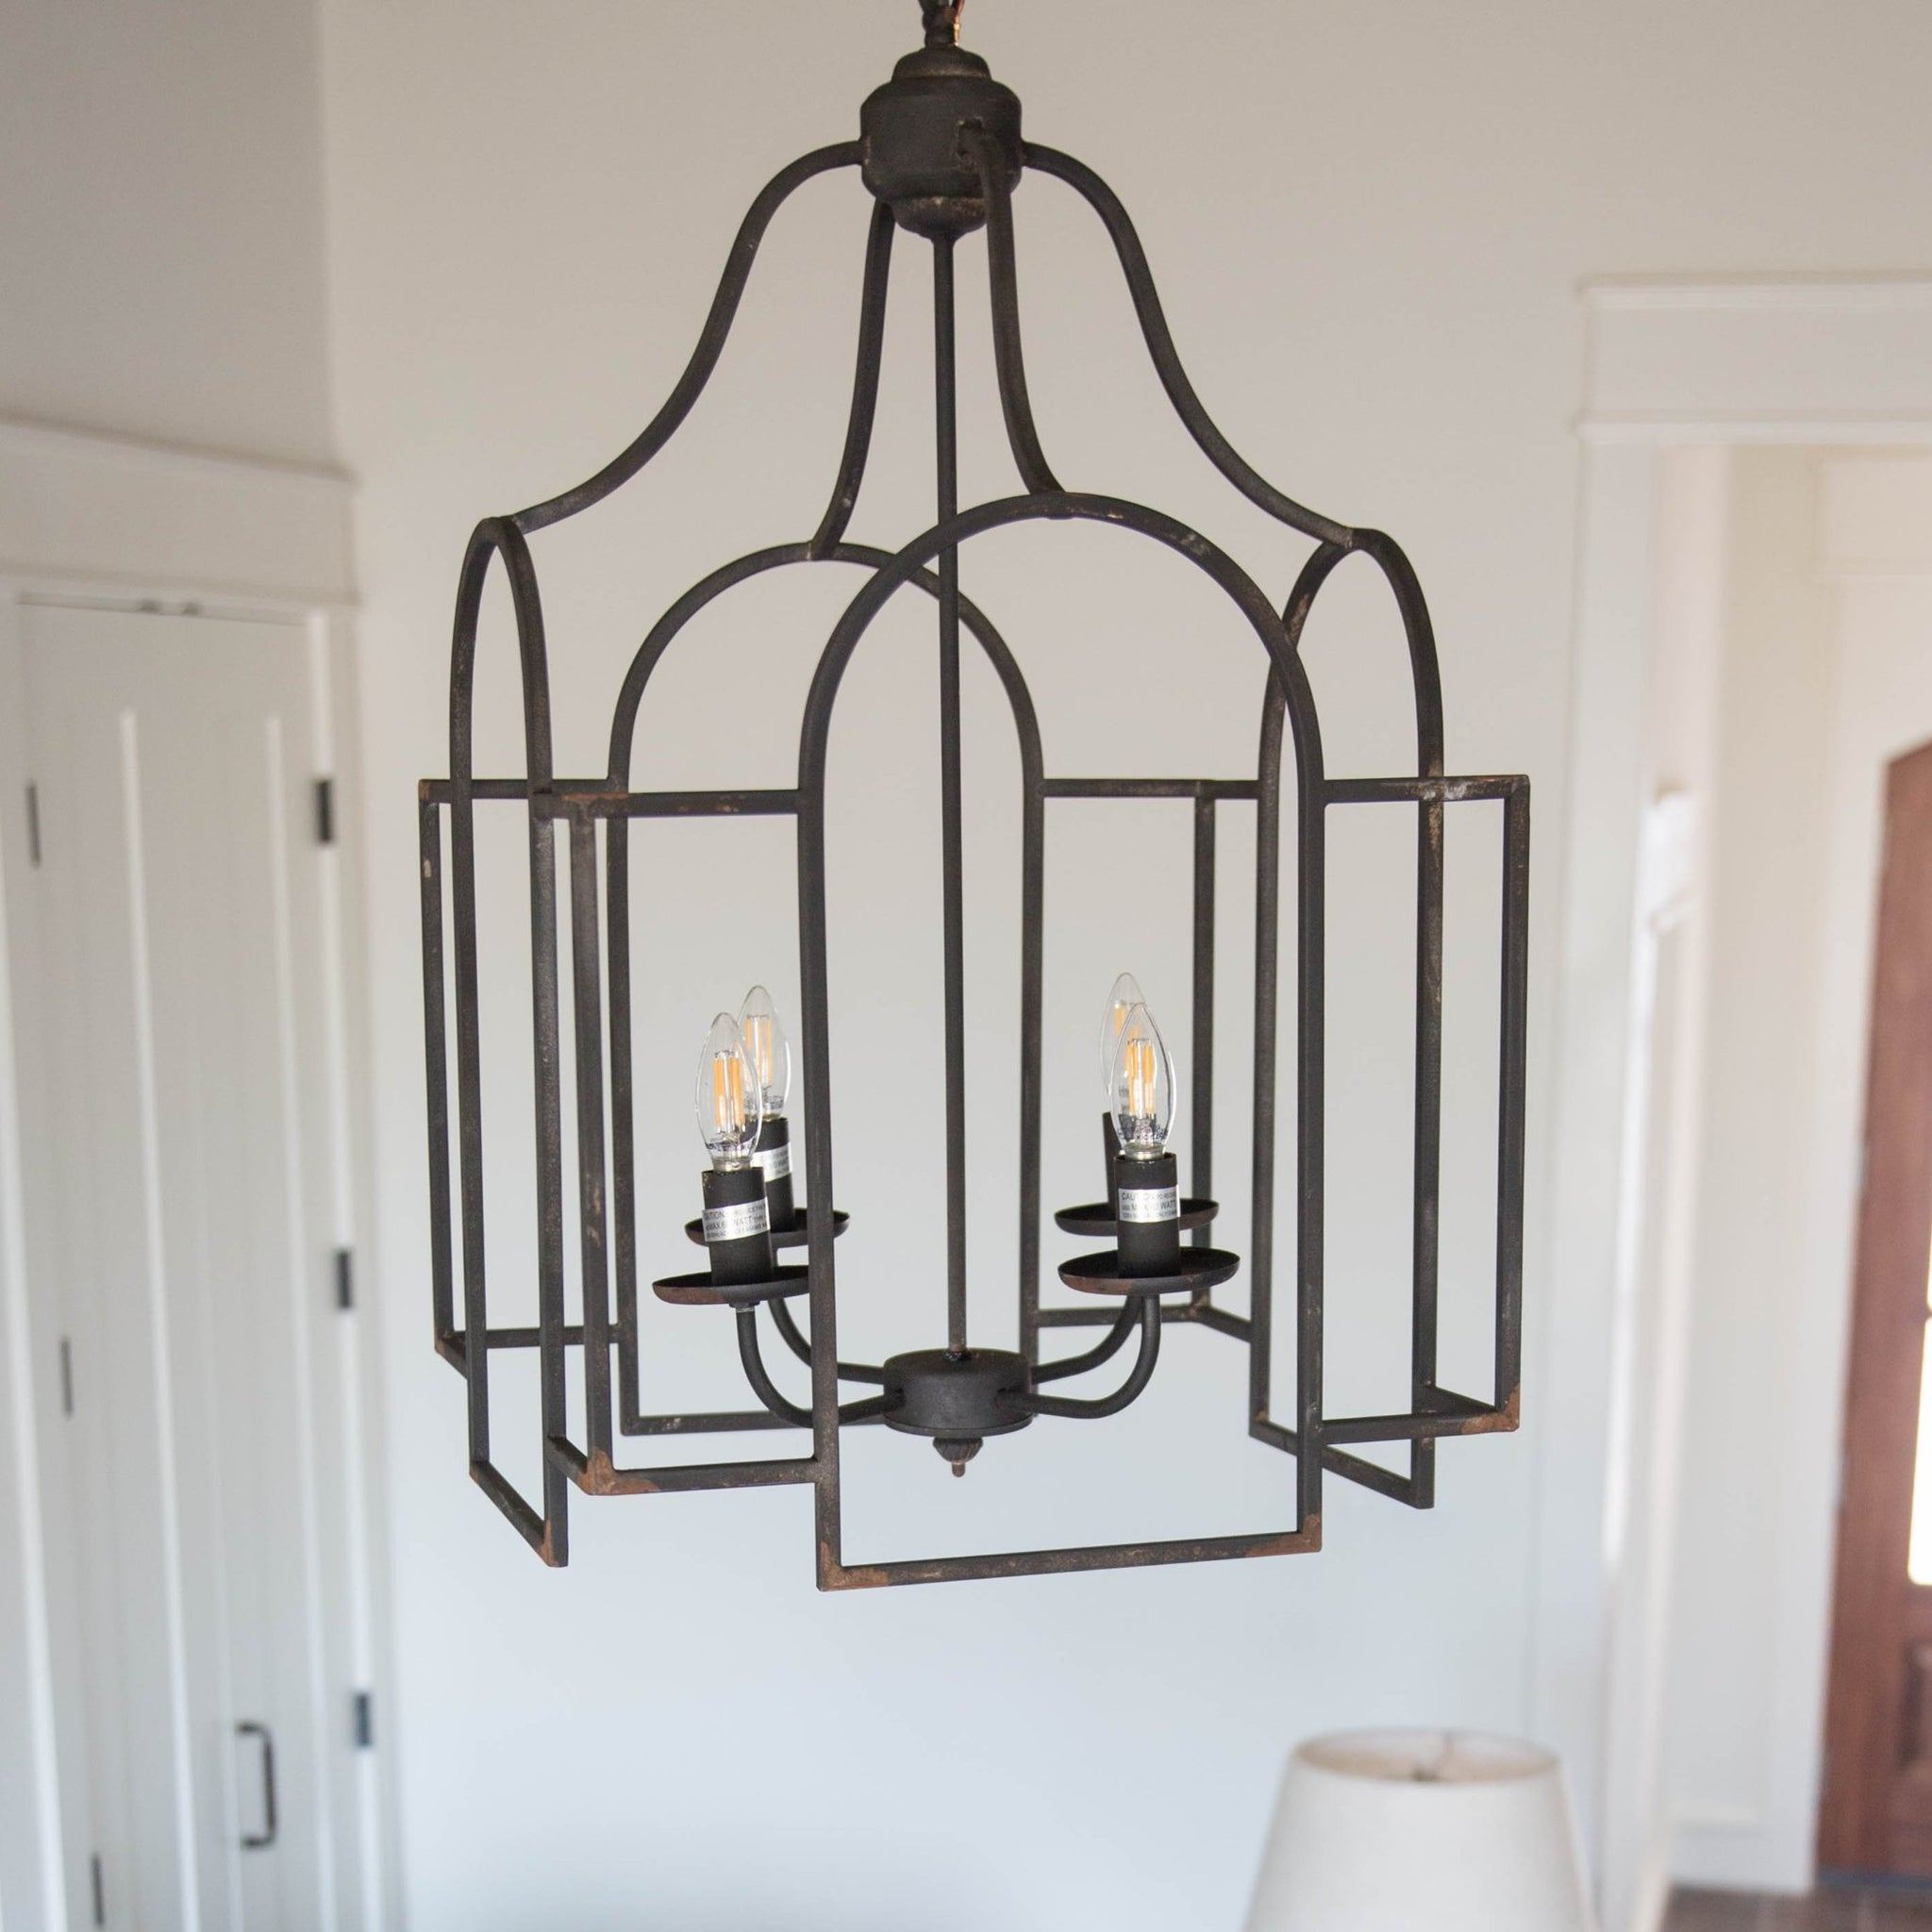 chandelier ceiling lights chandeliers lantern style tuscany fixtures of